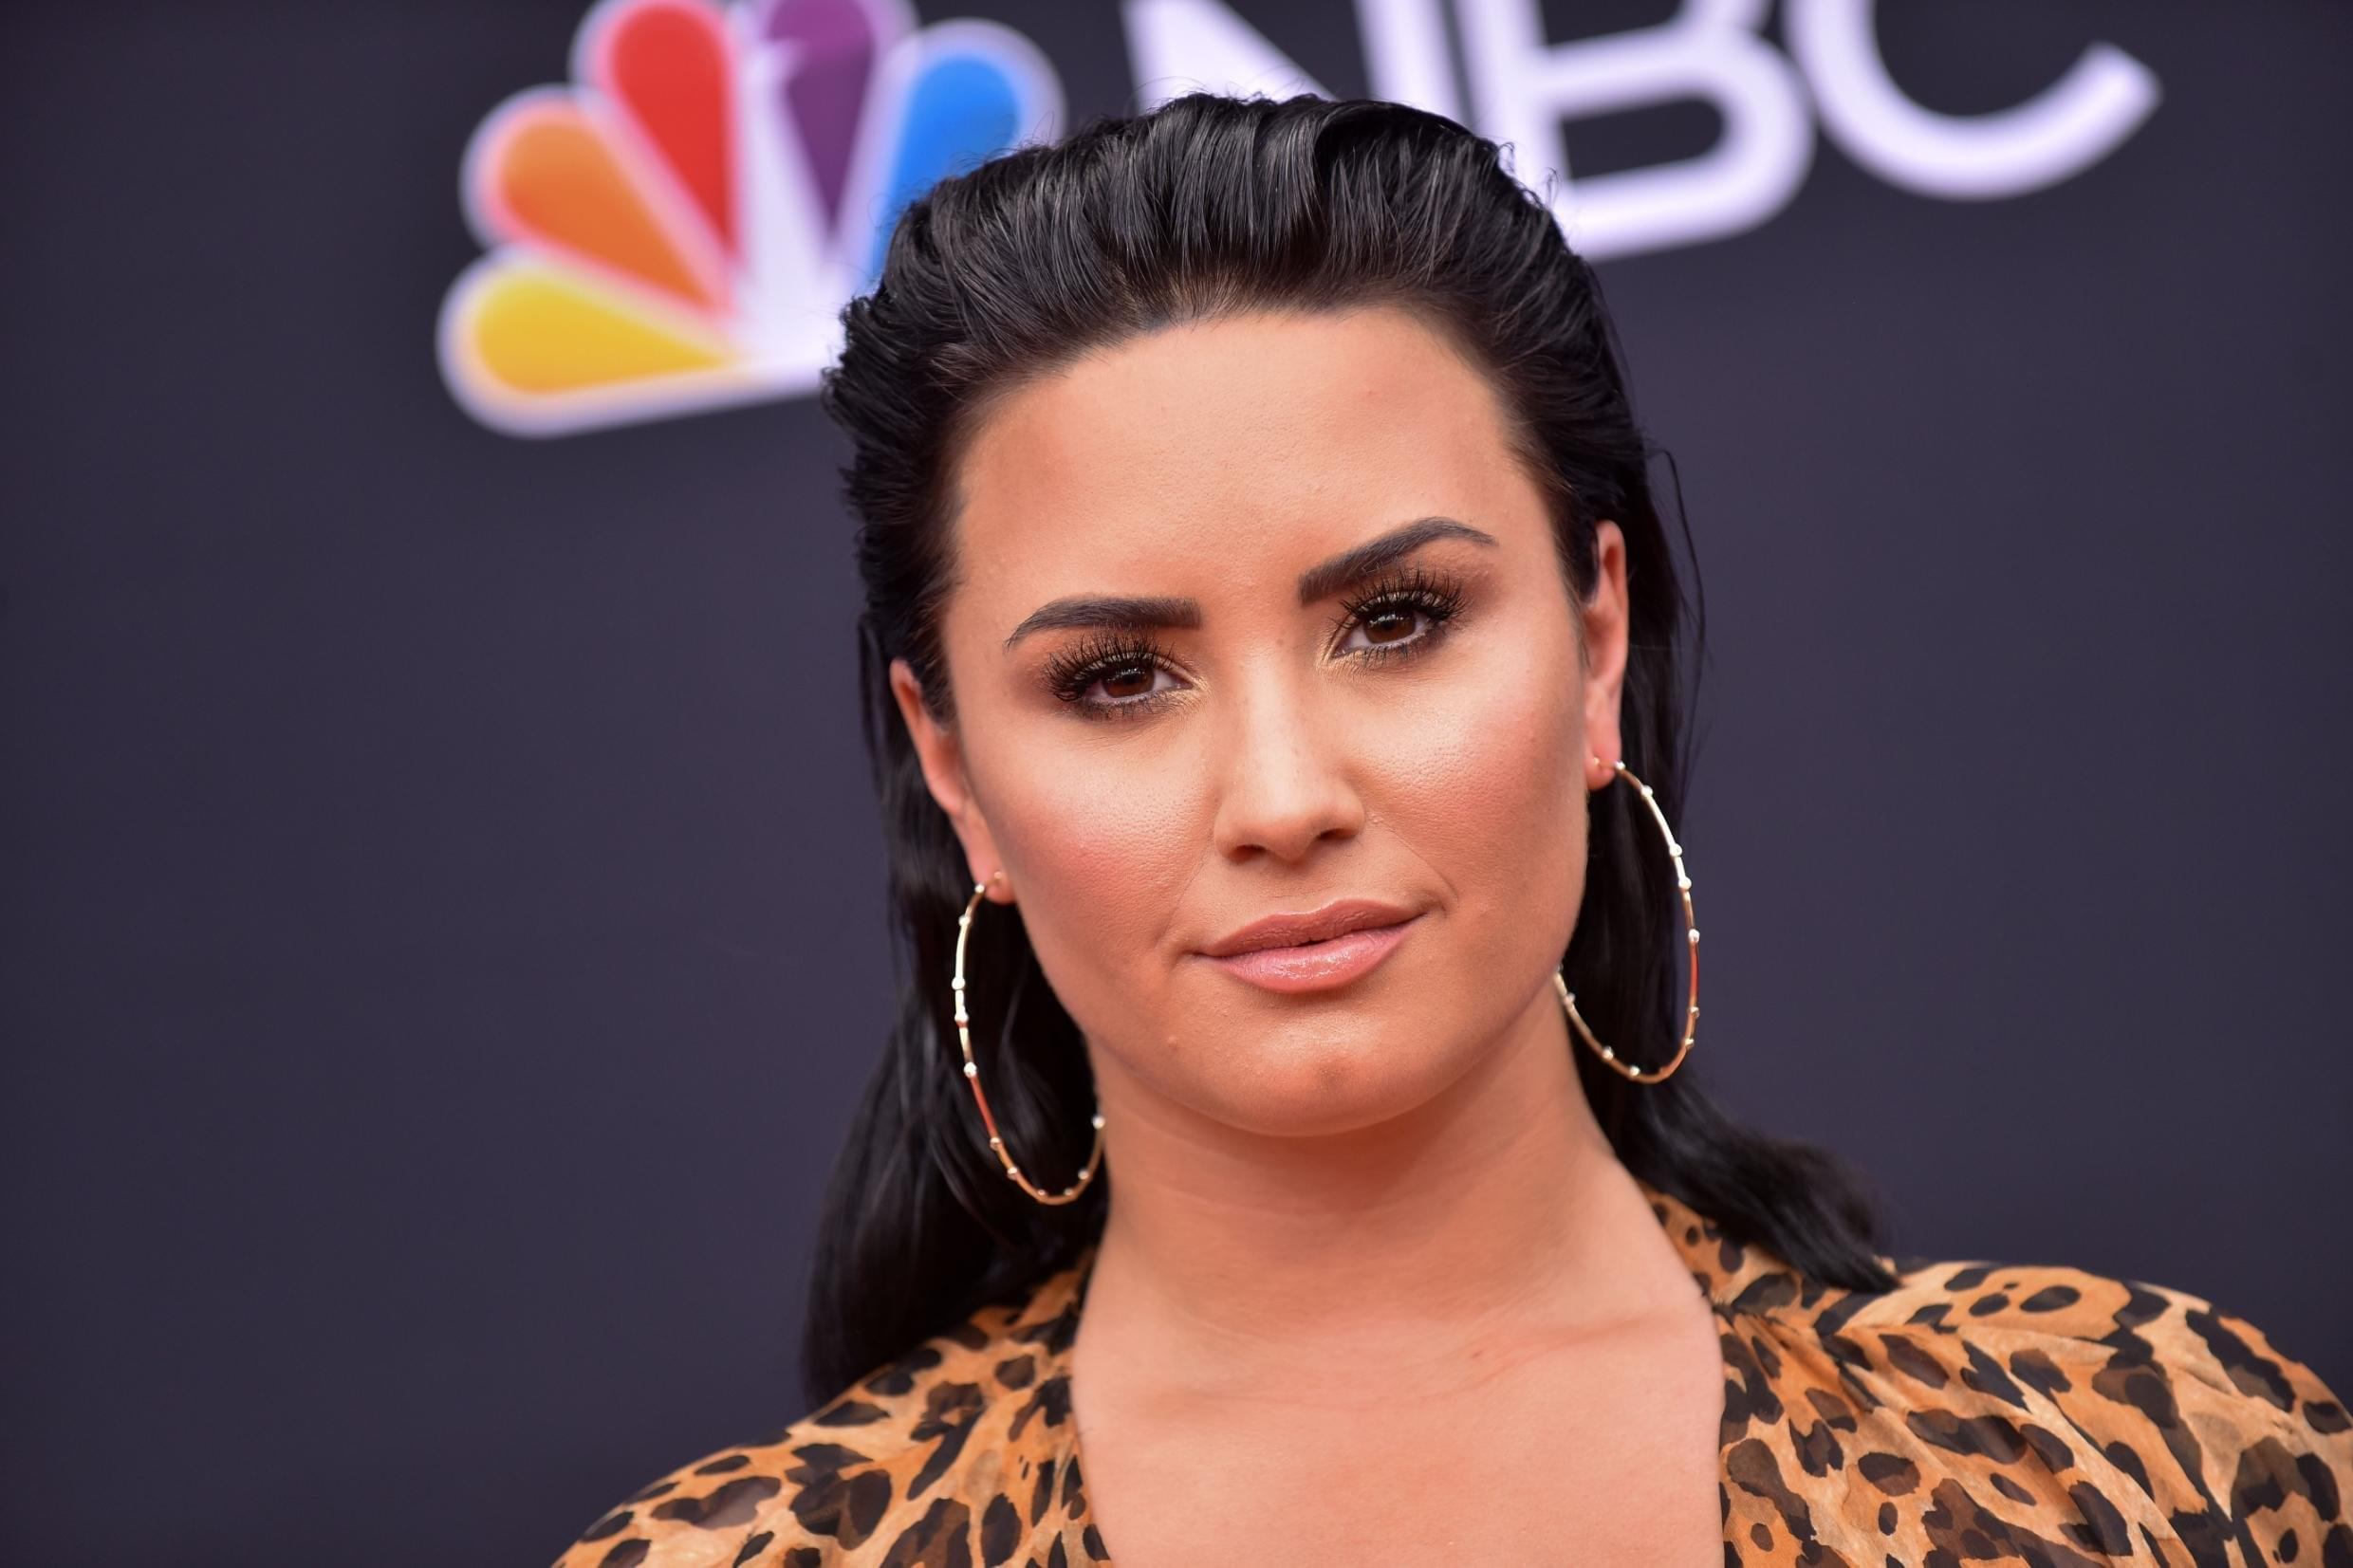 Demi Lovato Is Selling The Home Where She Overdosed